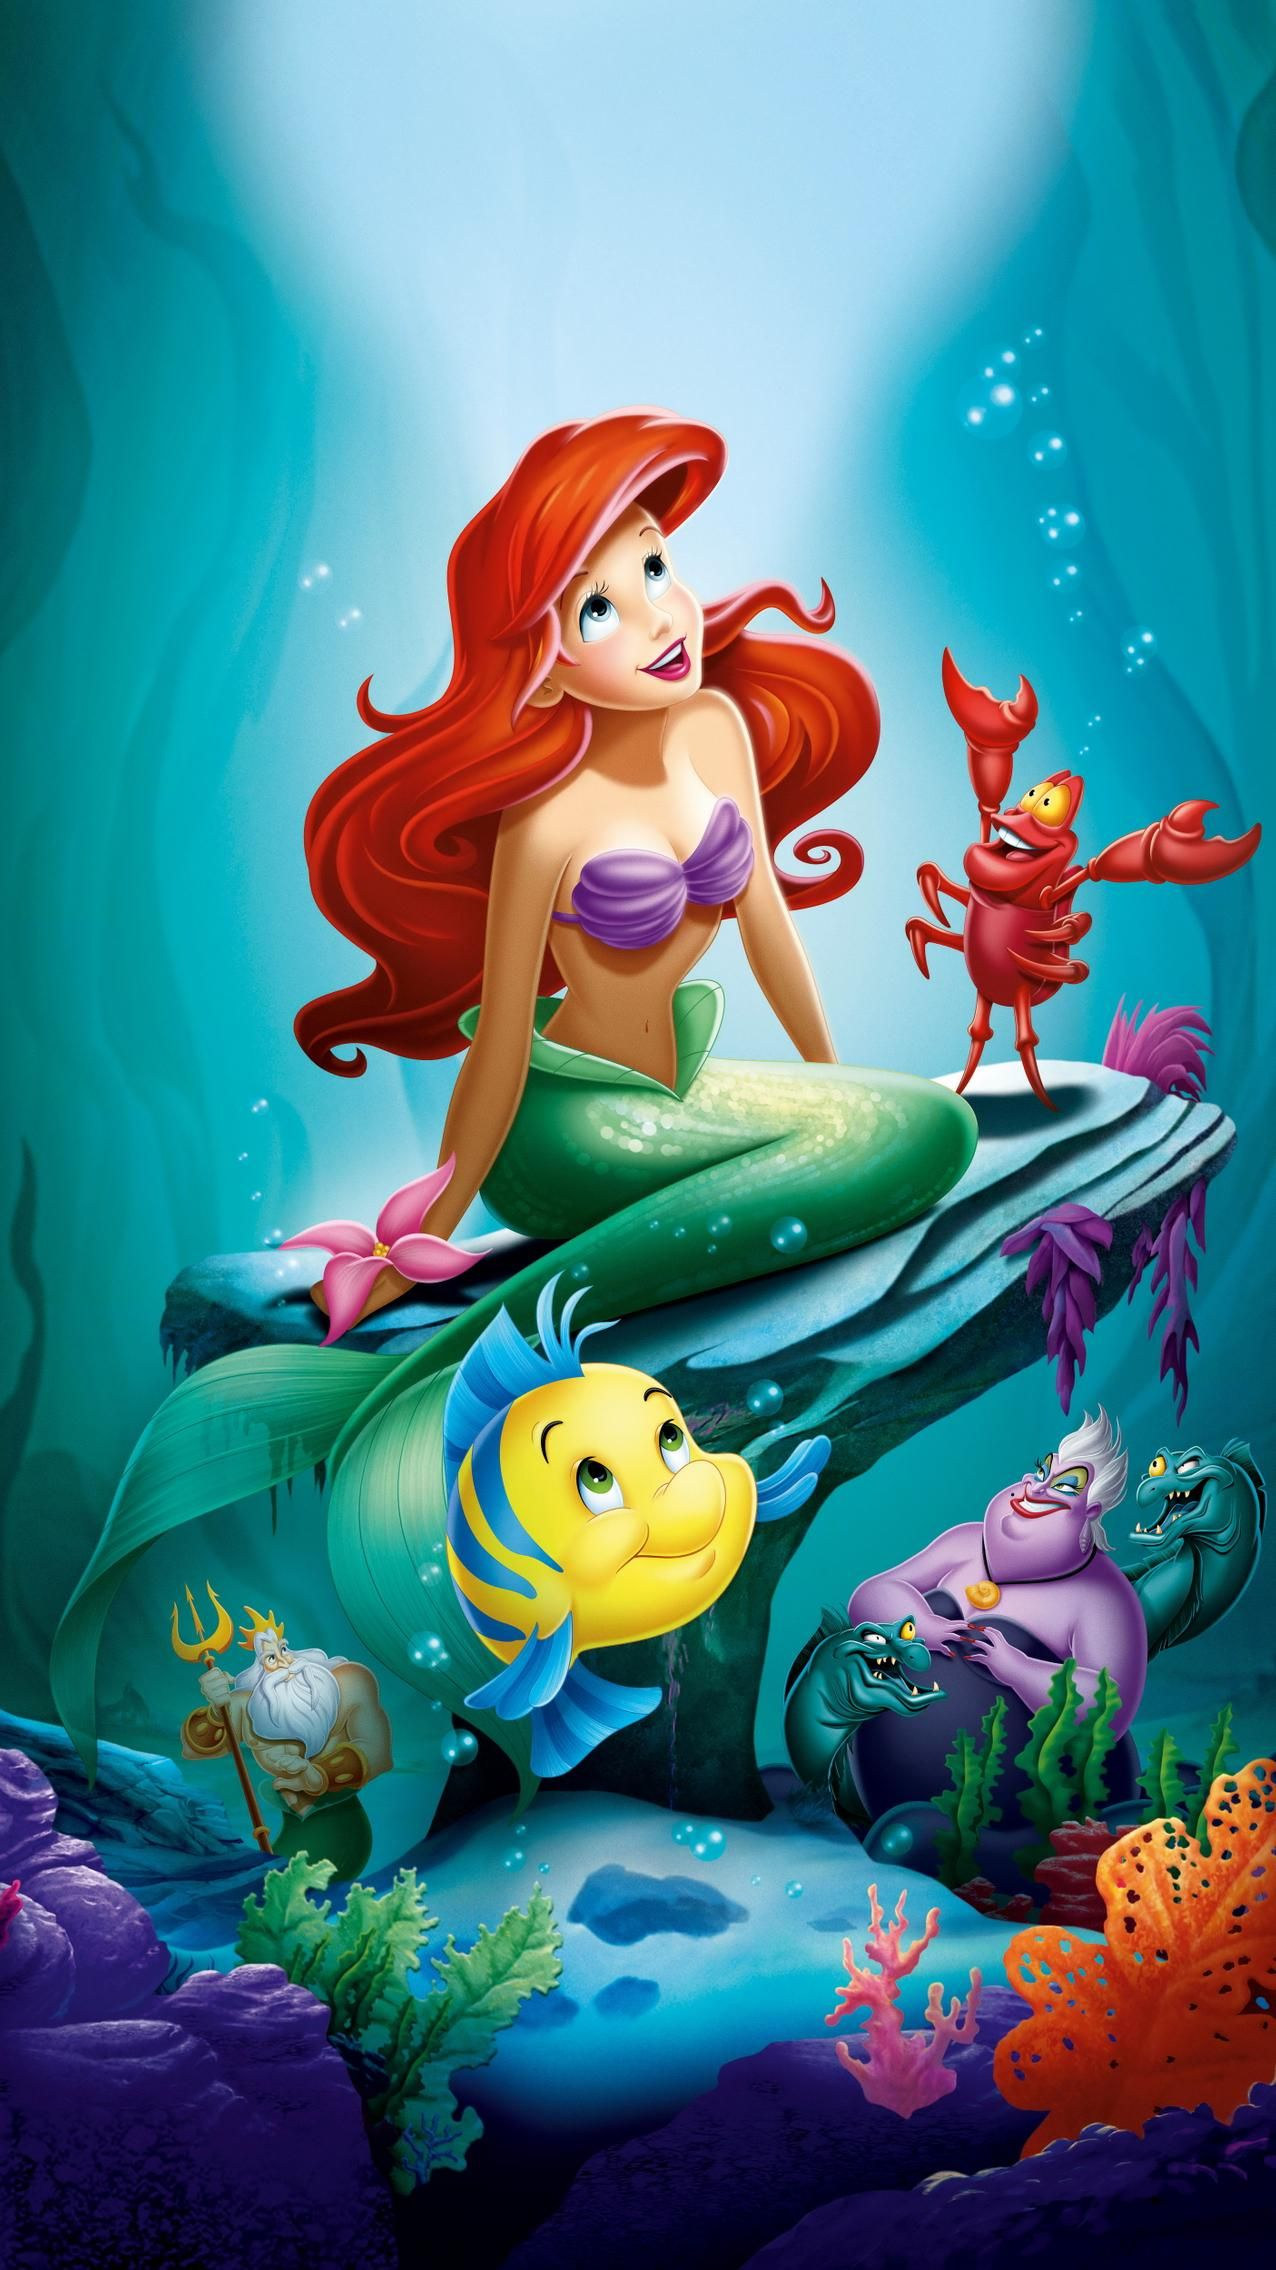 The Little Mermaid 1989 Phone Wallpaper Moviemania Little Mermaid Wallpaper Disney Princess Background Mermaid Wallpapers